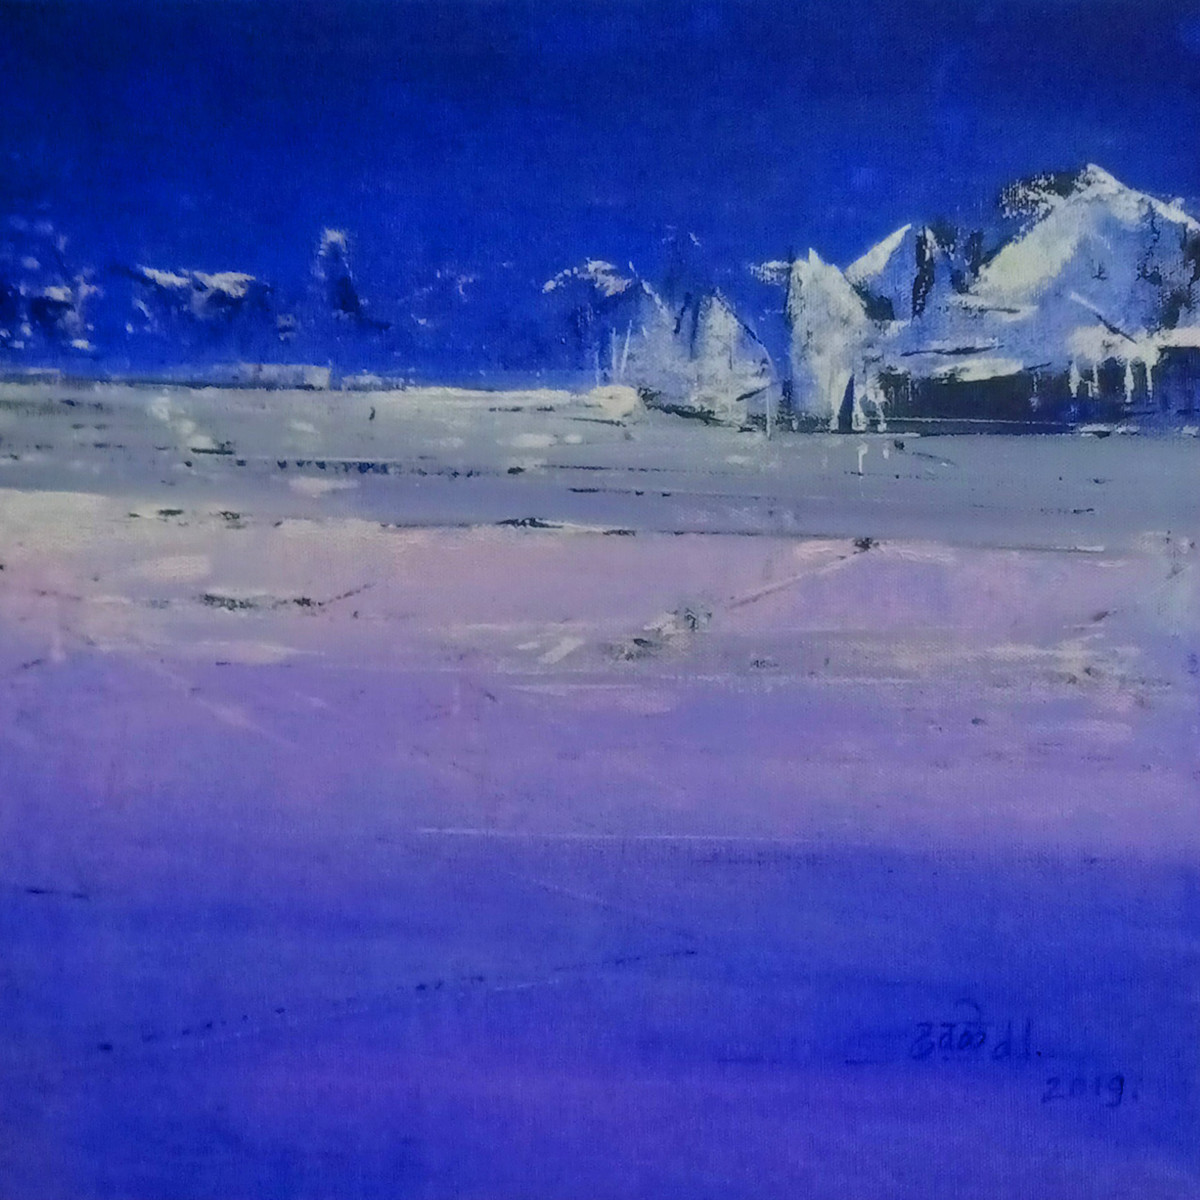 Dreamland-2 by Dnyaneshwar Dhavale , Abstract Painting, Acrylic on Canvas, Blue color